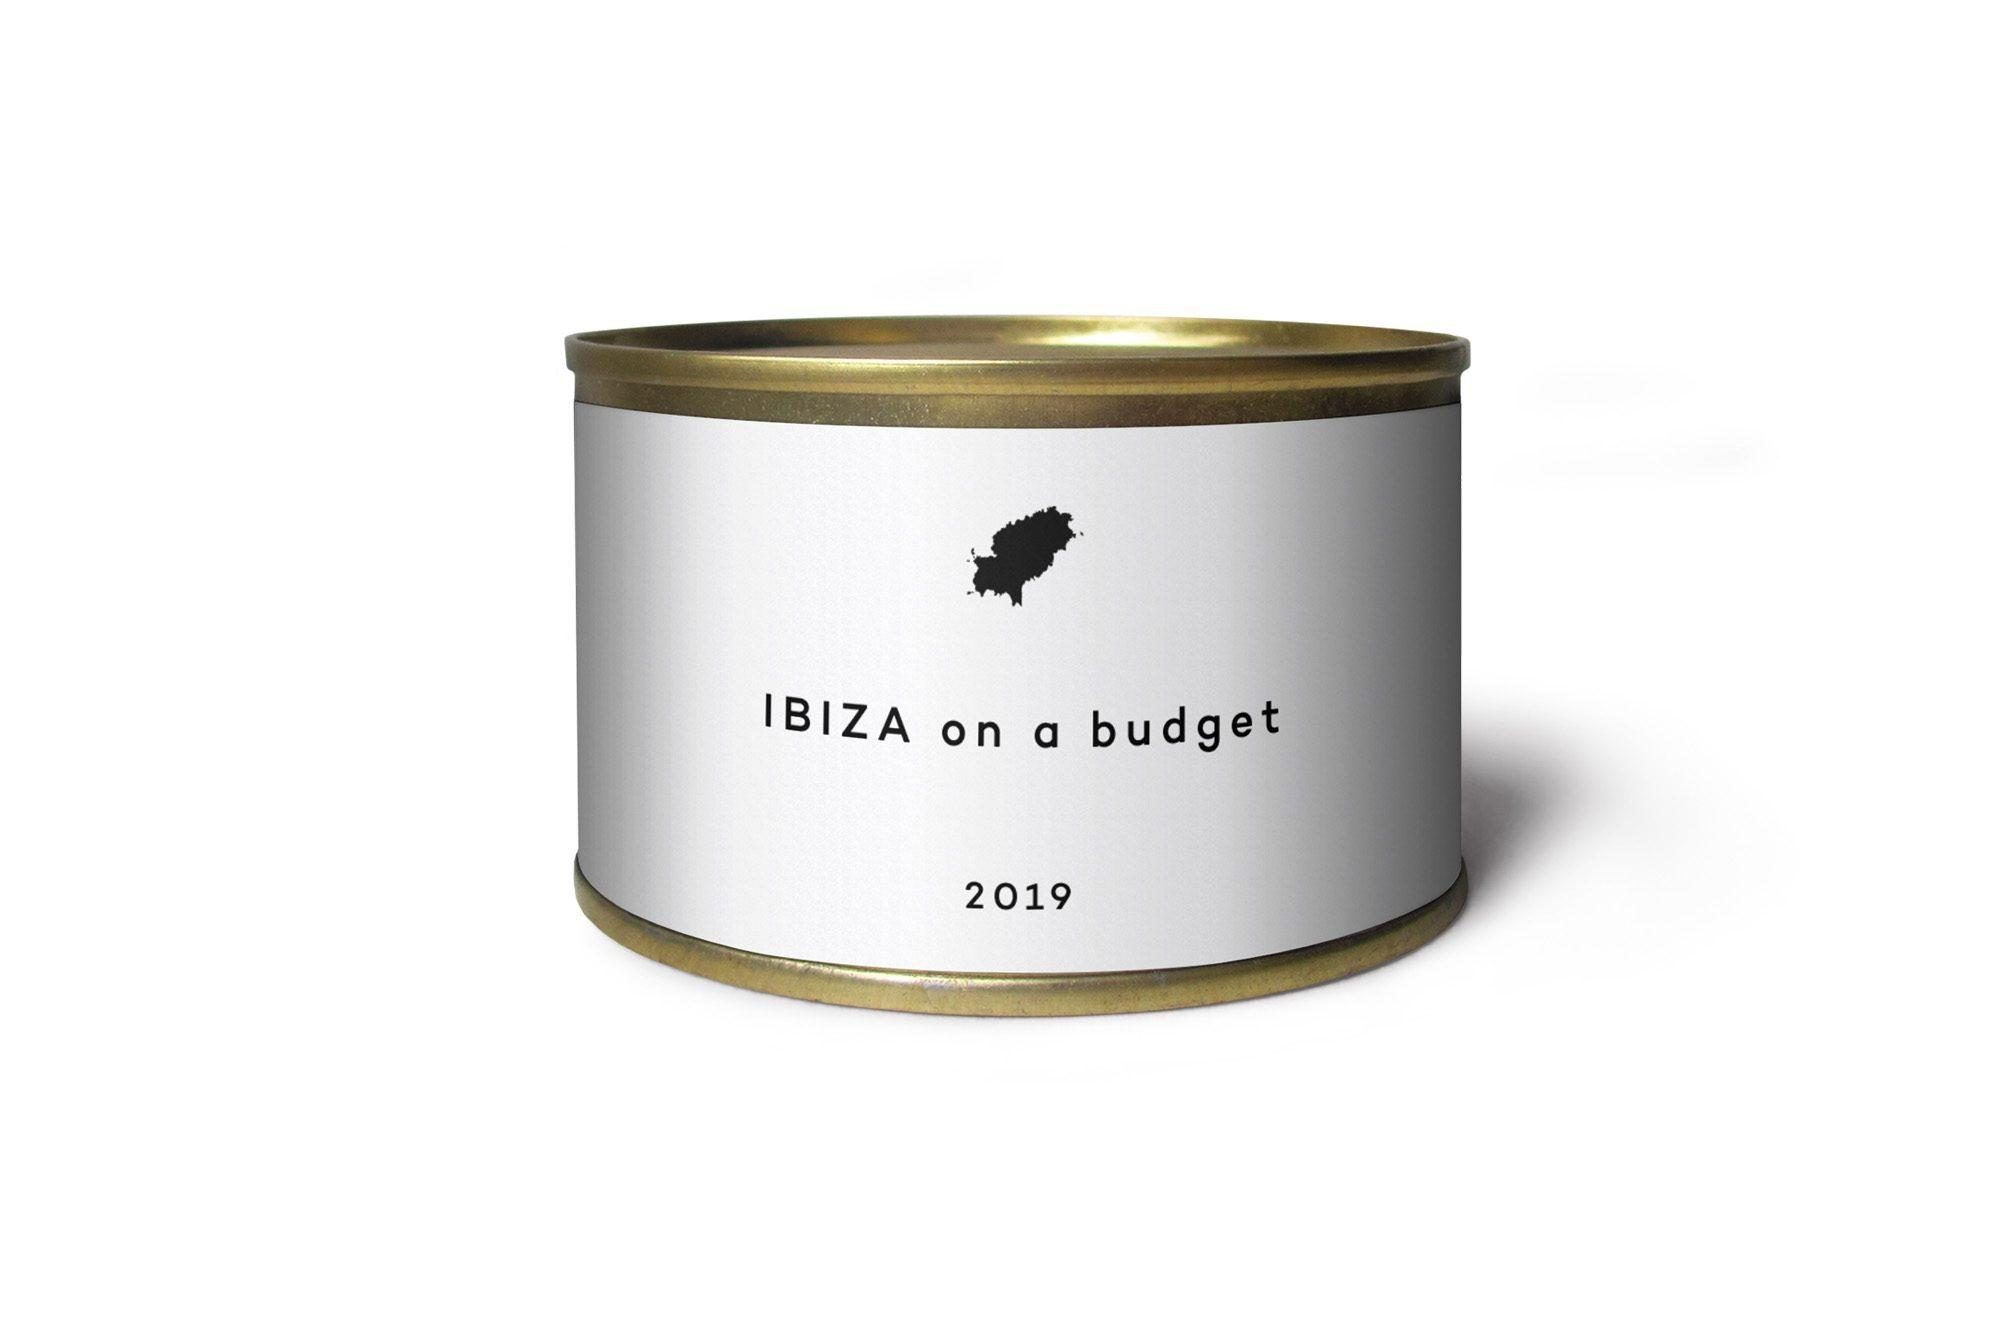 Cheap thrills: How to have an affordable Ibiza holiday in